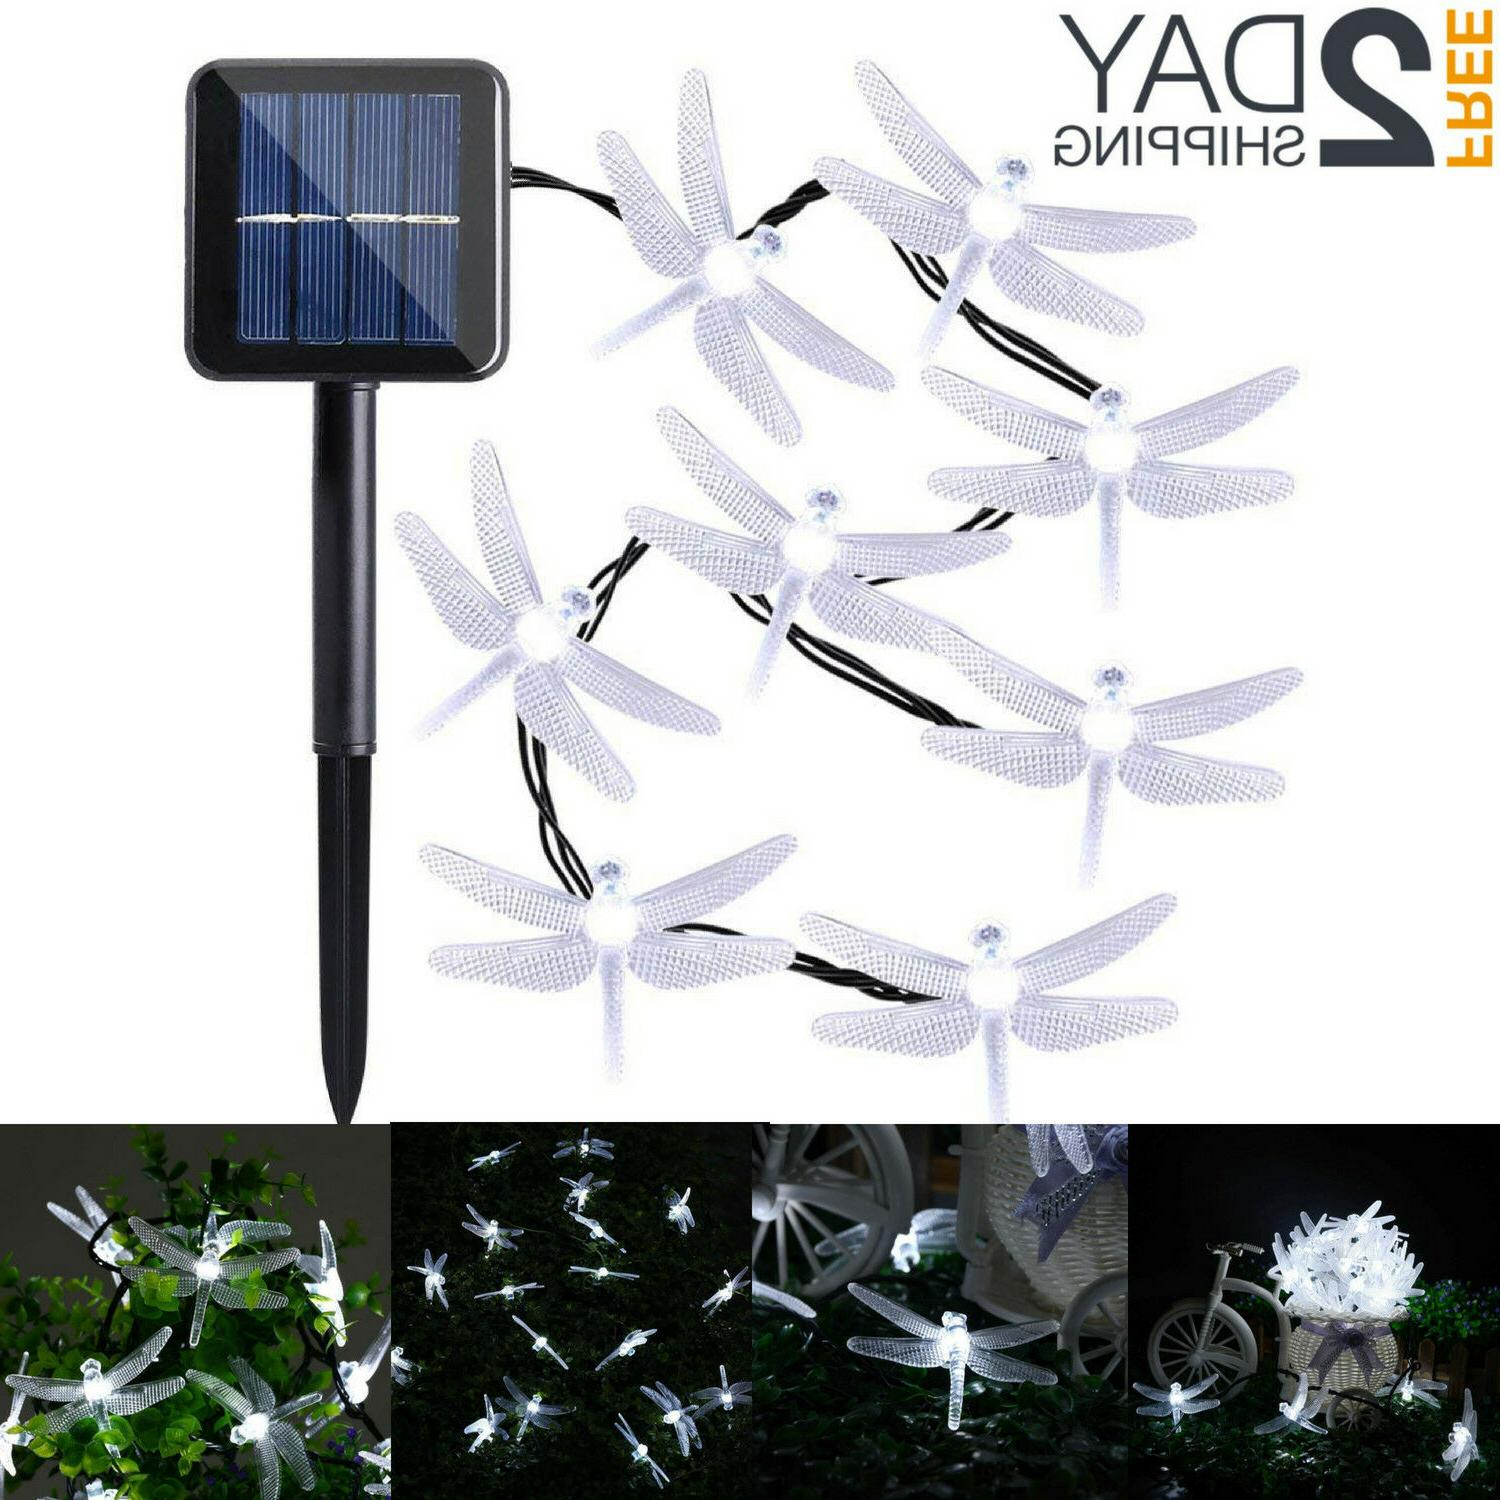 Outdoor Solar Powered 20 LED Dragonfly String Light Garden P